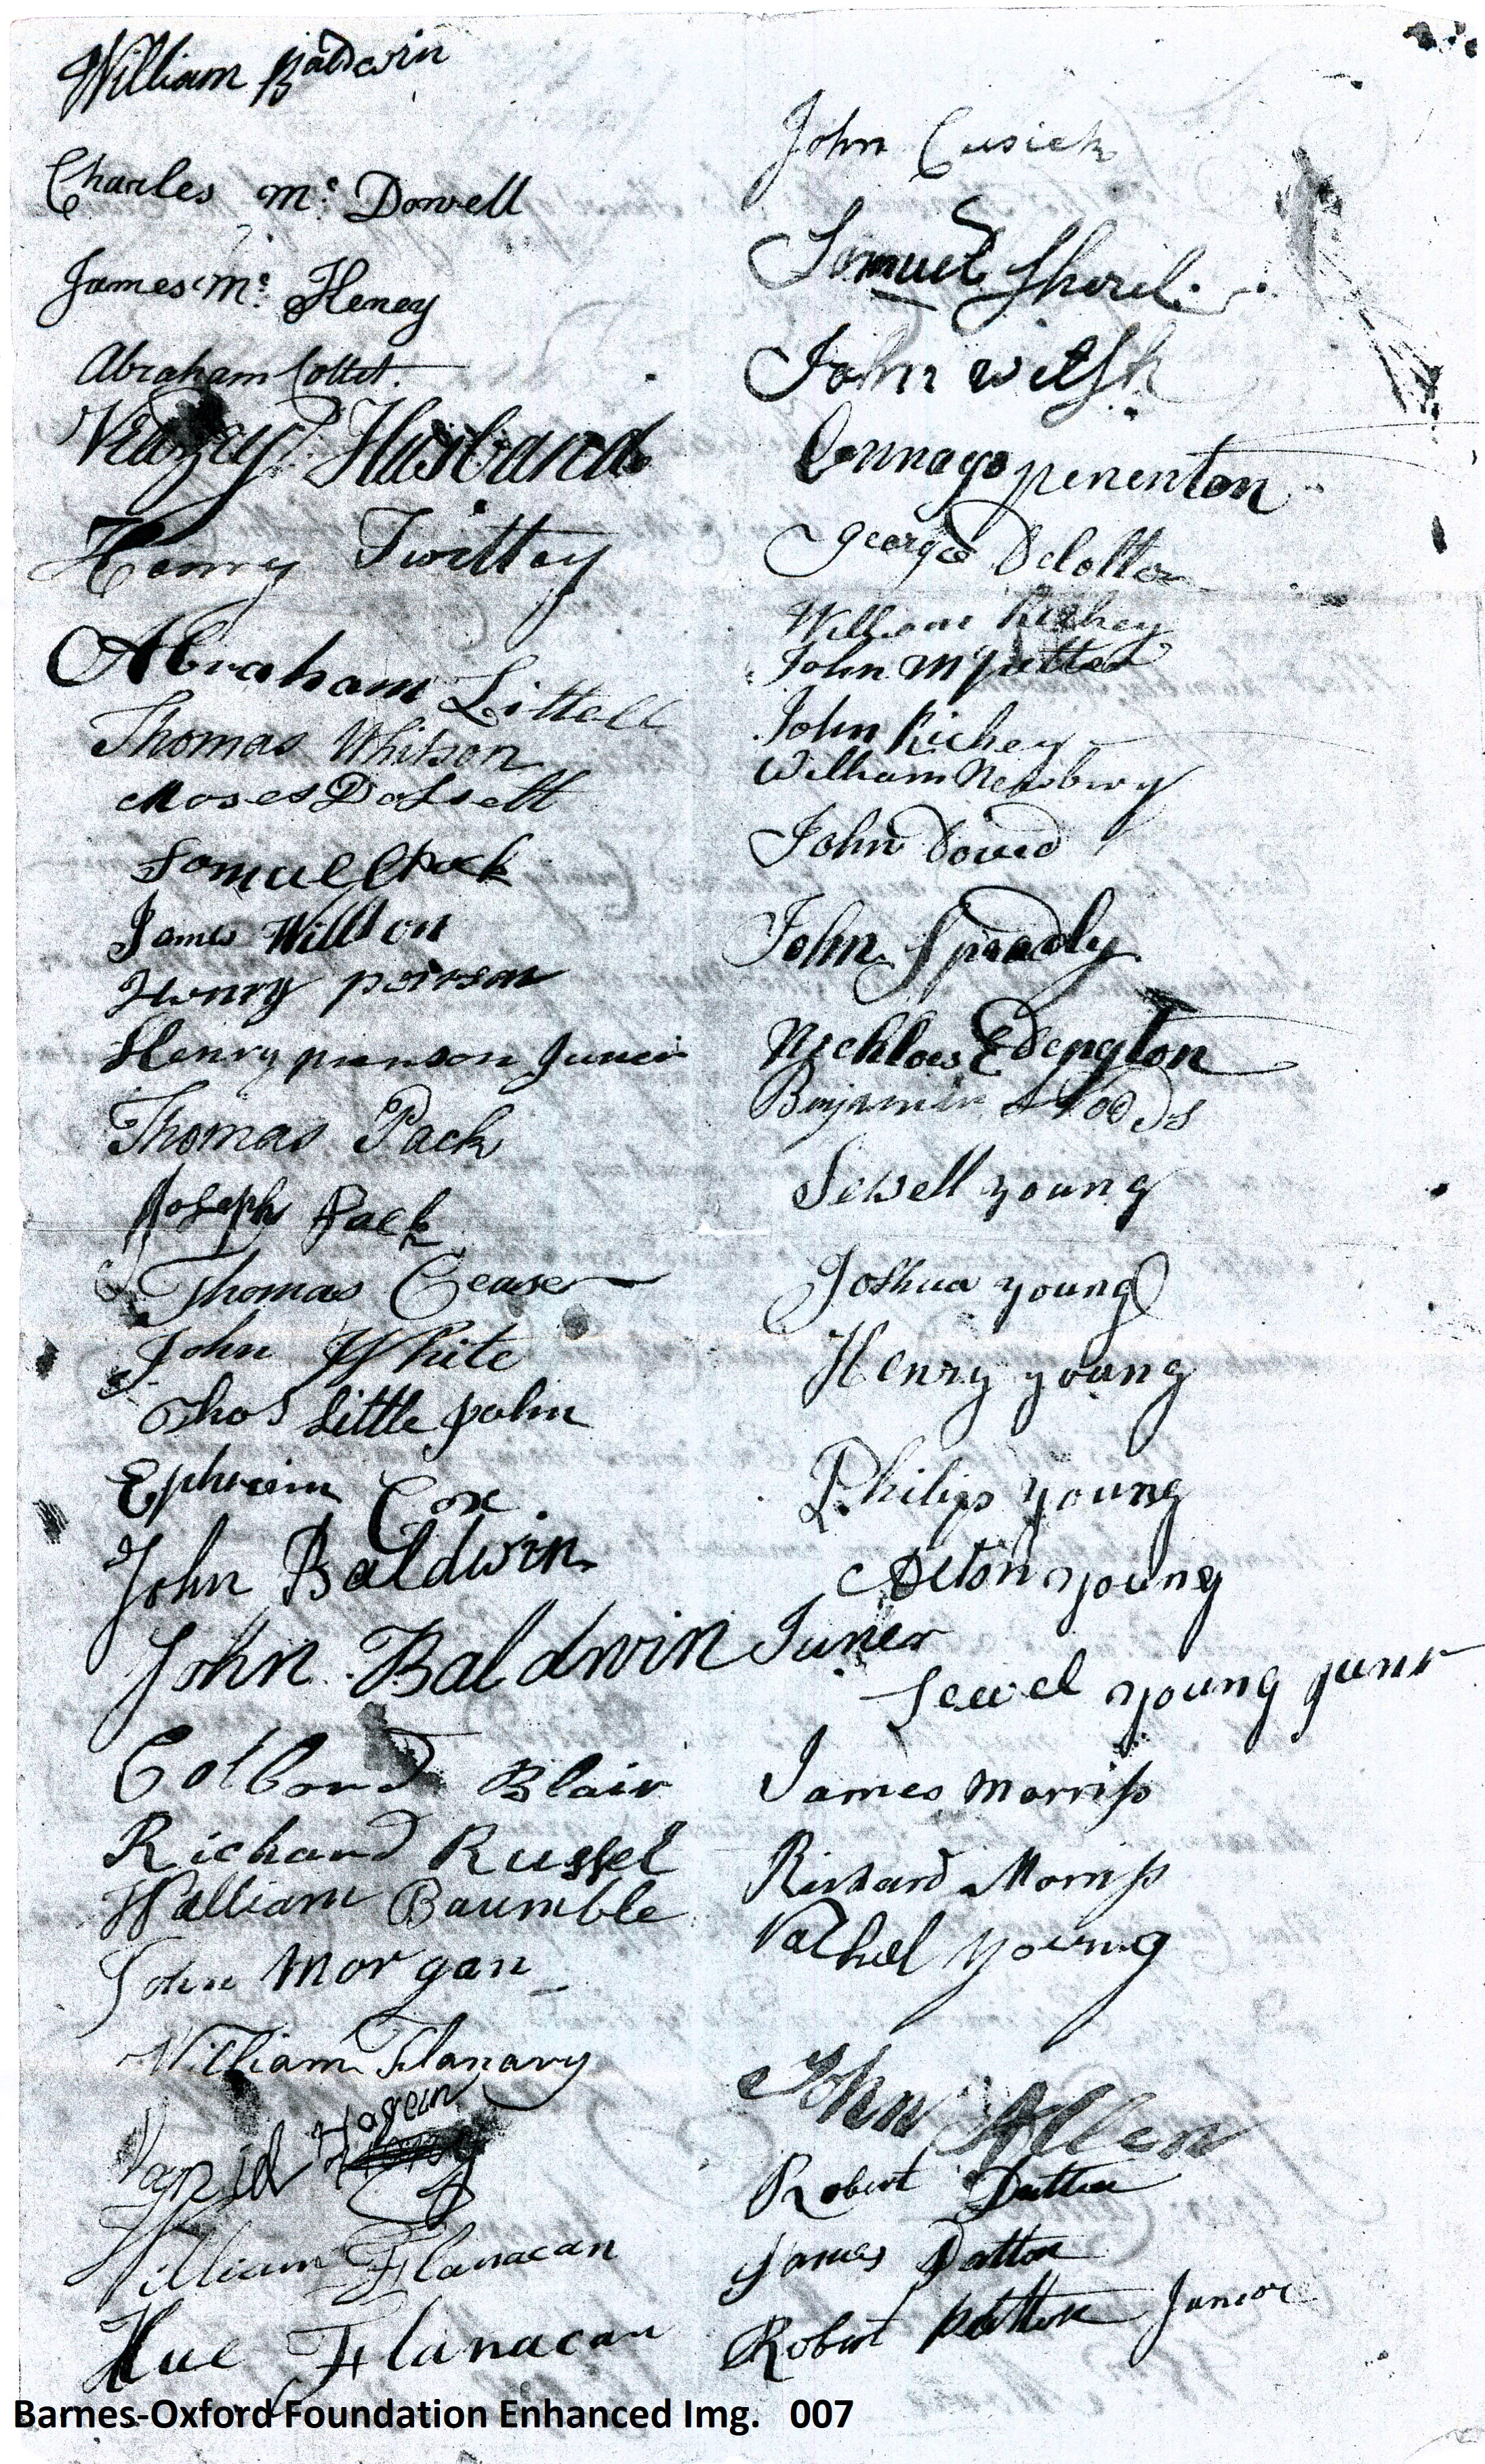 Petition Dividing Rowan creating Burke Co. 27 Nov. 1771 pg 7 of 9